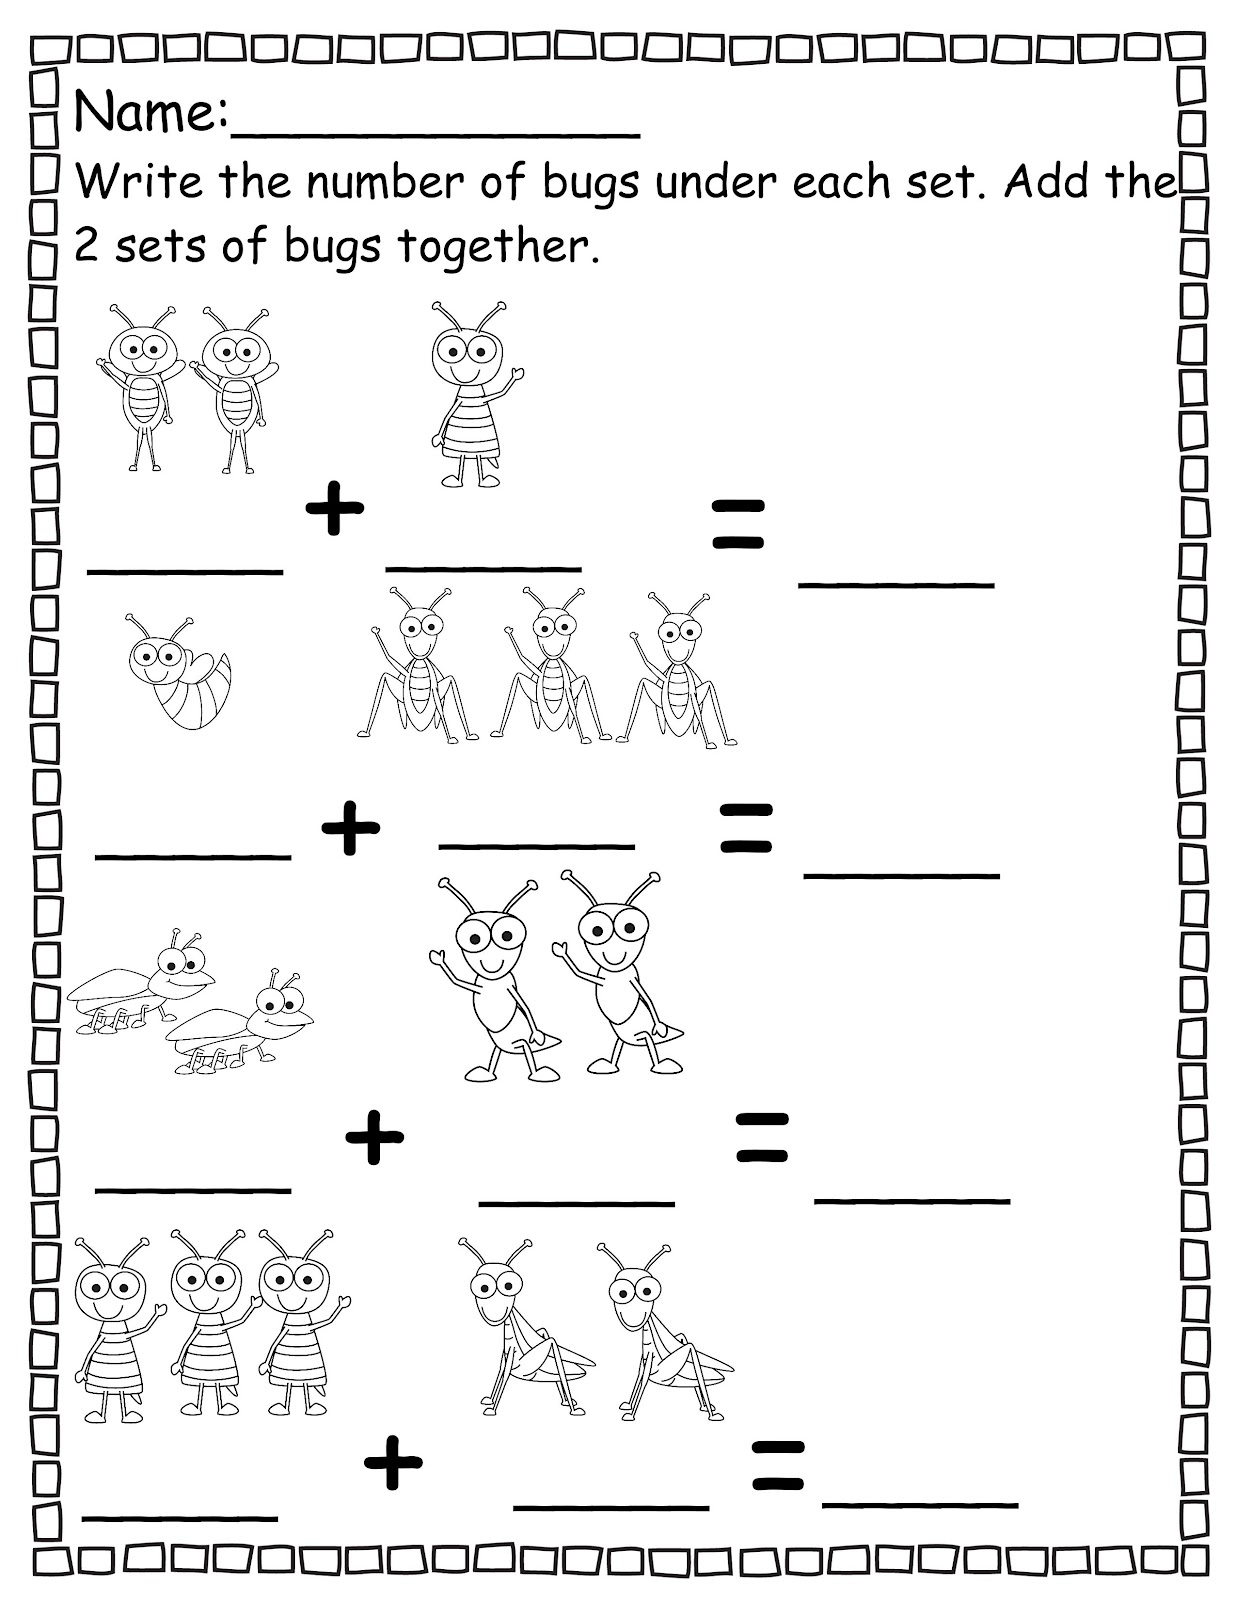 Printables Printable Worksheets For Pre K printable worksheets for pre k abitlikethis the crazy classroom free printables